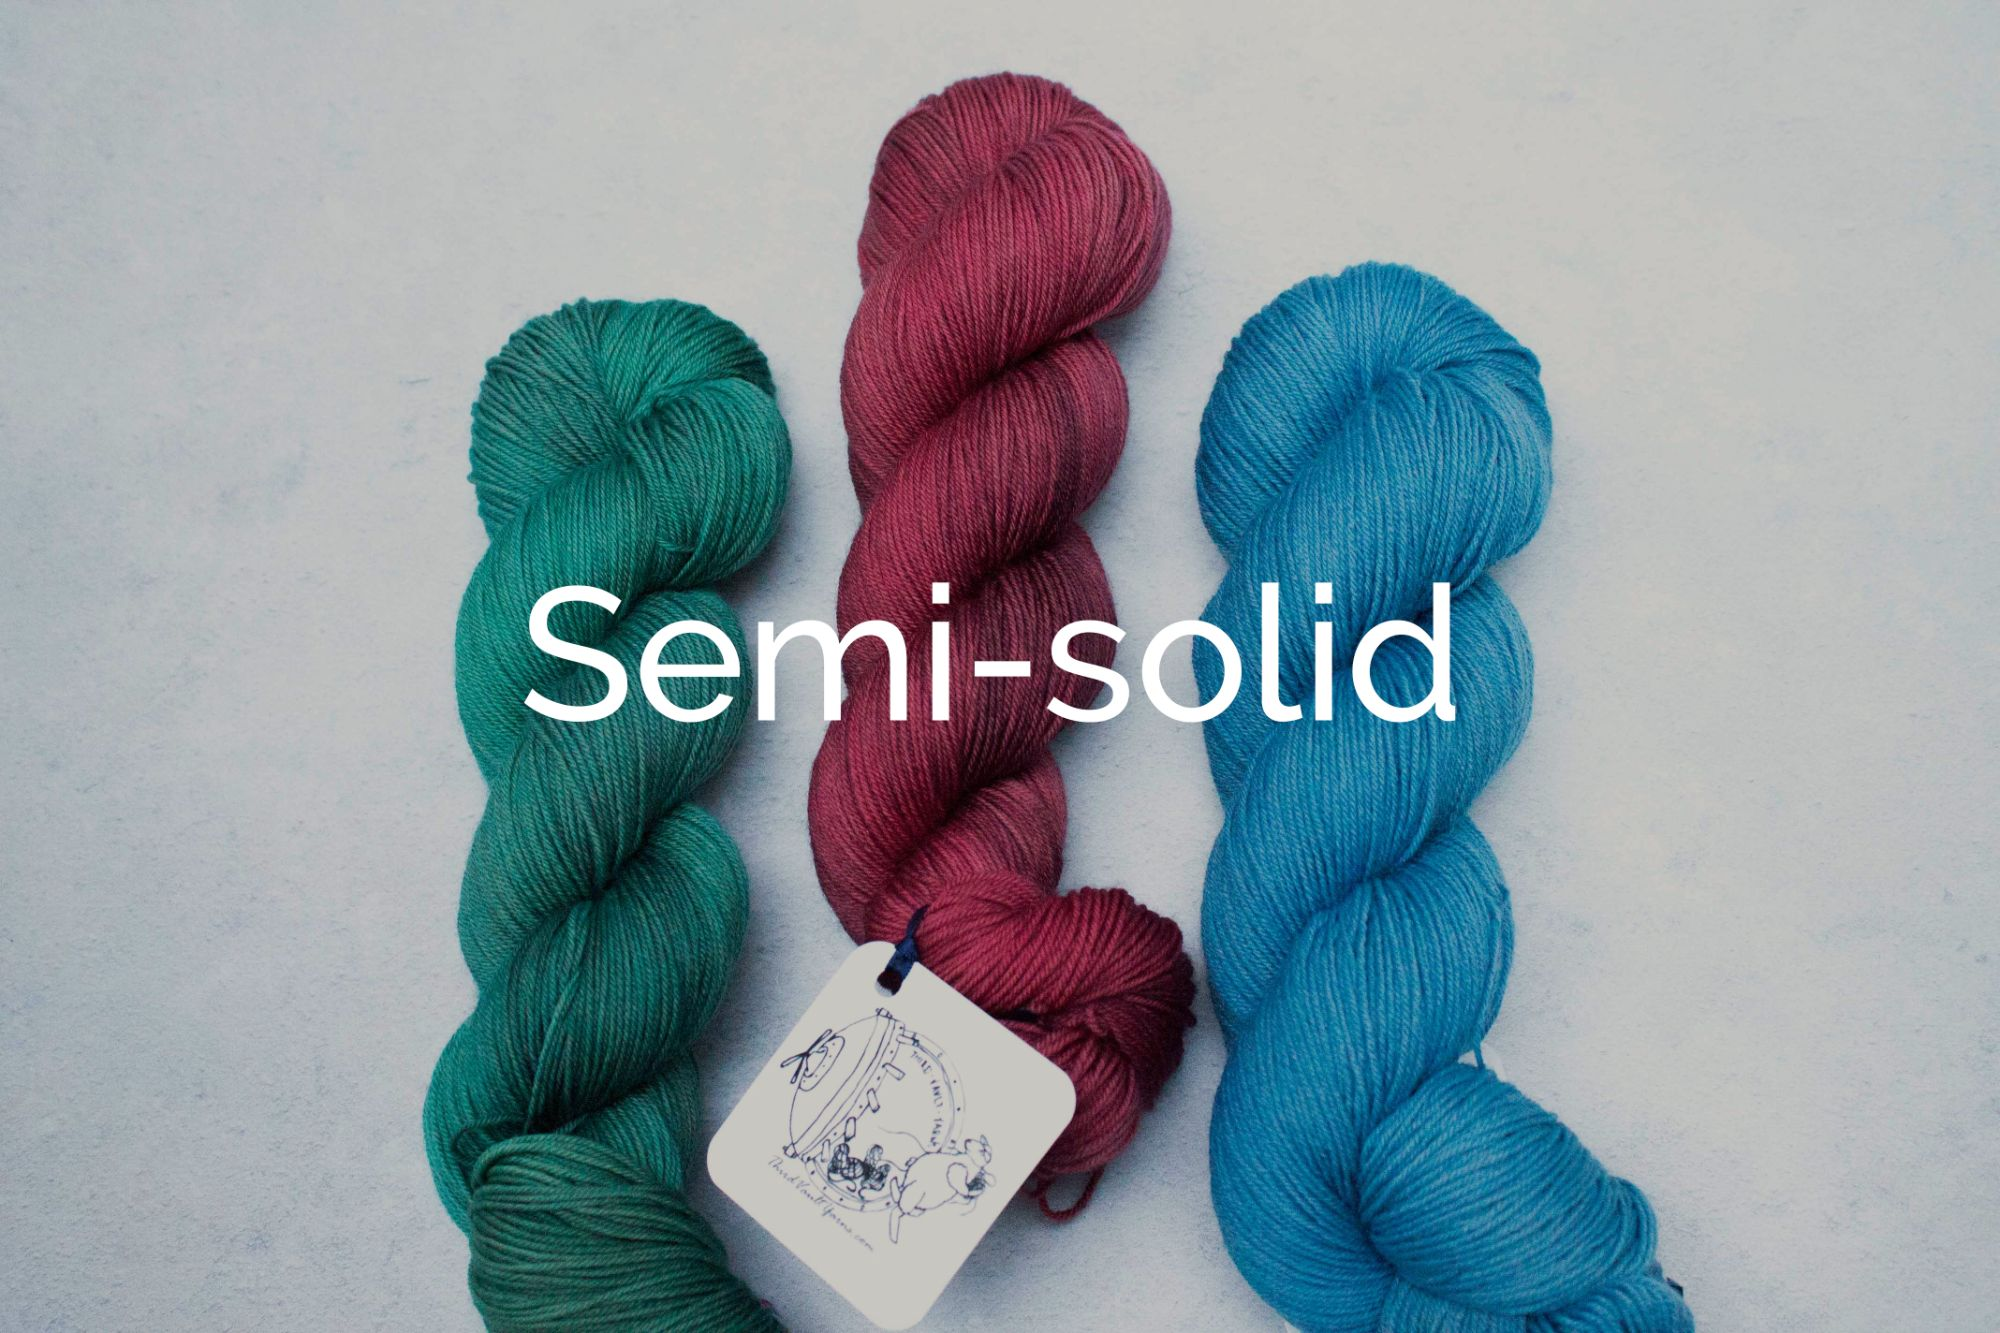 3 skeins in laid out next to each other with the middle skein offset upwards. Coloured Green, Red, Blue, with white text saying Semi-Solid (Links to the semisolid section of the shop)